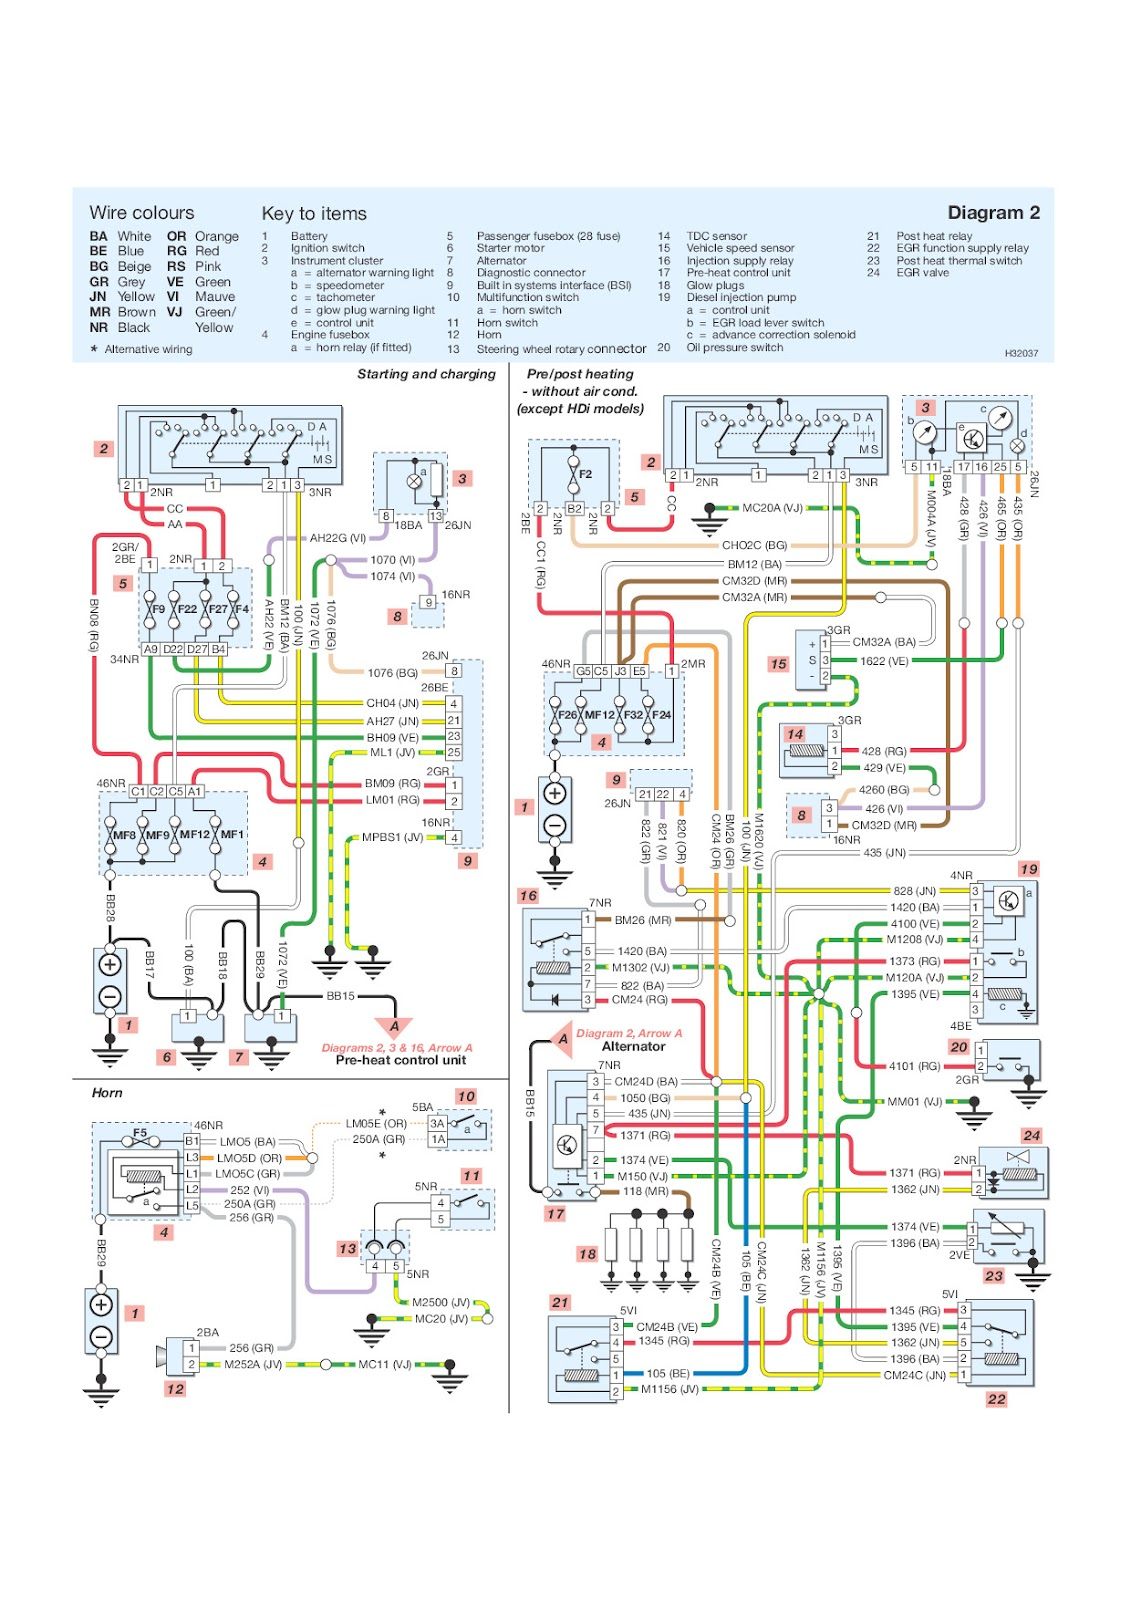 1998 acura integra alarm wiring diagram 277v light switch cluster get free image about